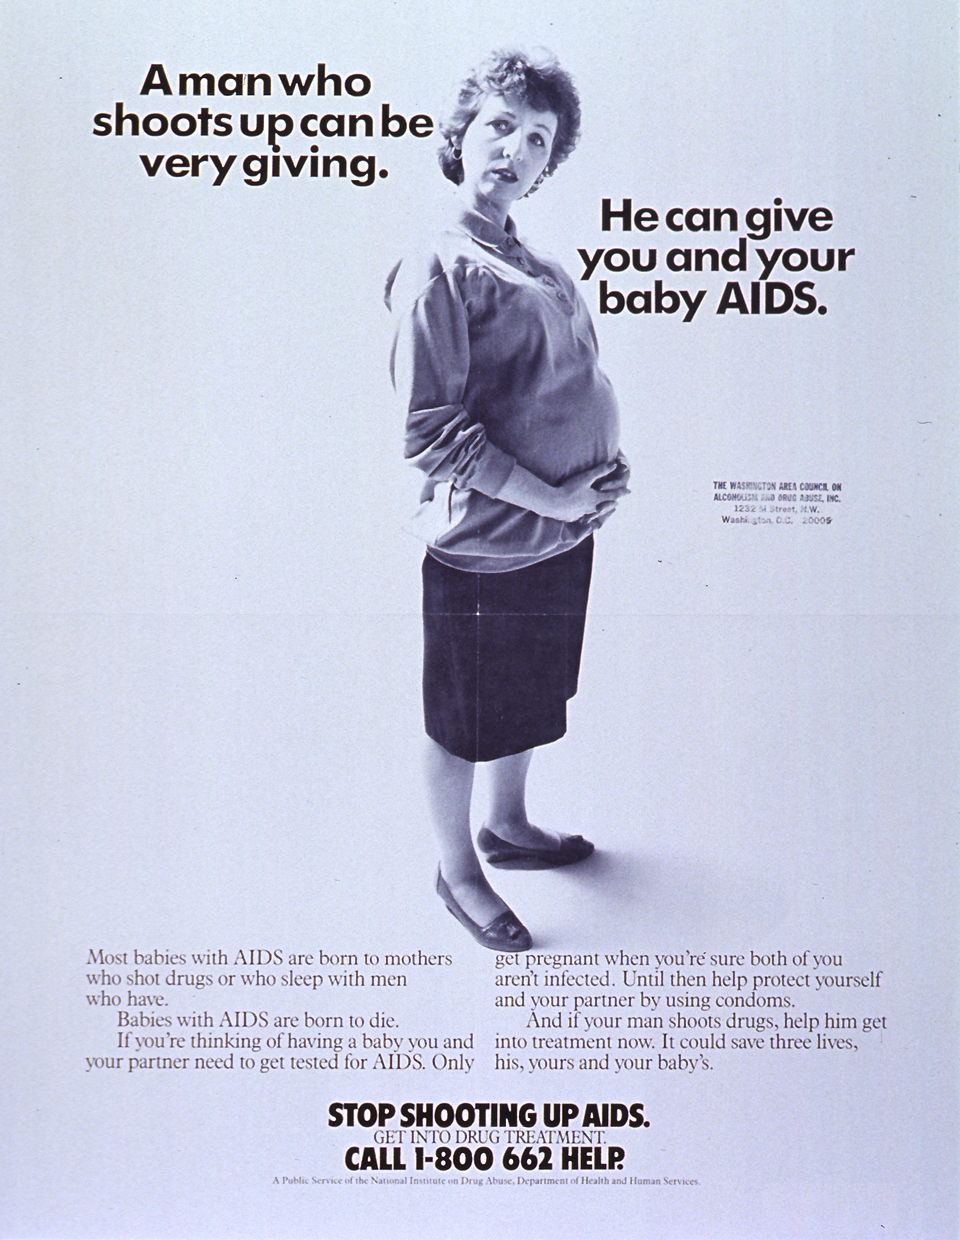 White poster with black lettering. Title A Man Who Shoots Up Can Be Very Giving is near the top of poster. Visual image is a reproduction of a black and white photo of a pregnant woman of European heritage. She is standing in profile, with her head turned to face the viewer. Lengthy caption appears below photo, stresses the risk of transmitting AIDS to a baby and the importance of testing and drug treatment. Remaining text, including a phone number for treatment information, at bottom of poster. Poster also bears an address stamp from the Washington Area Council on Alcoholism and Drug Abuse.